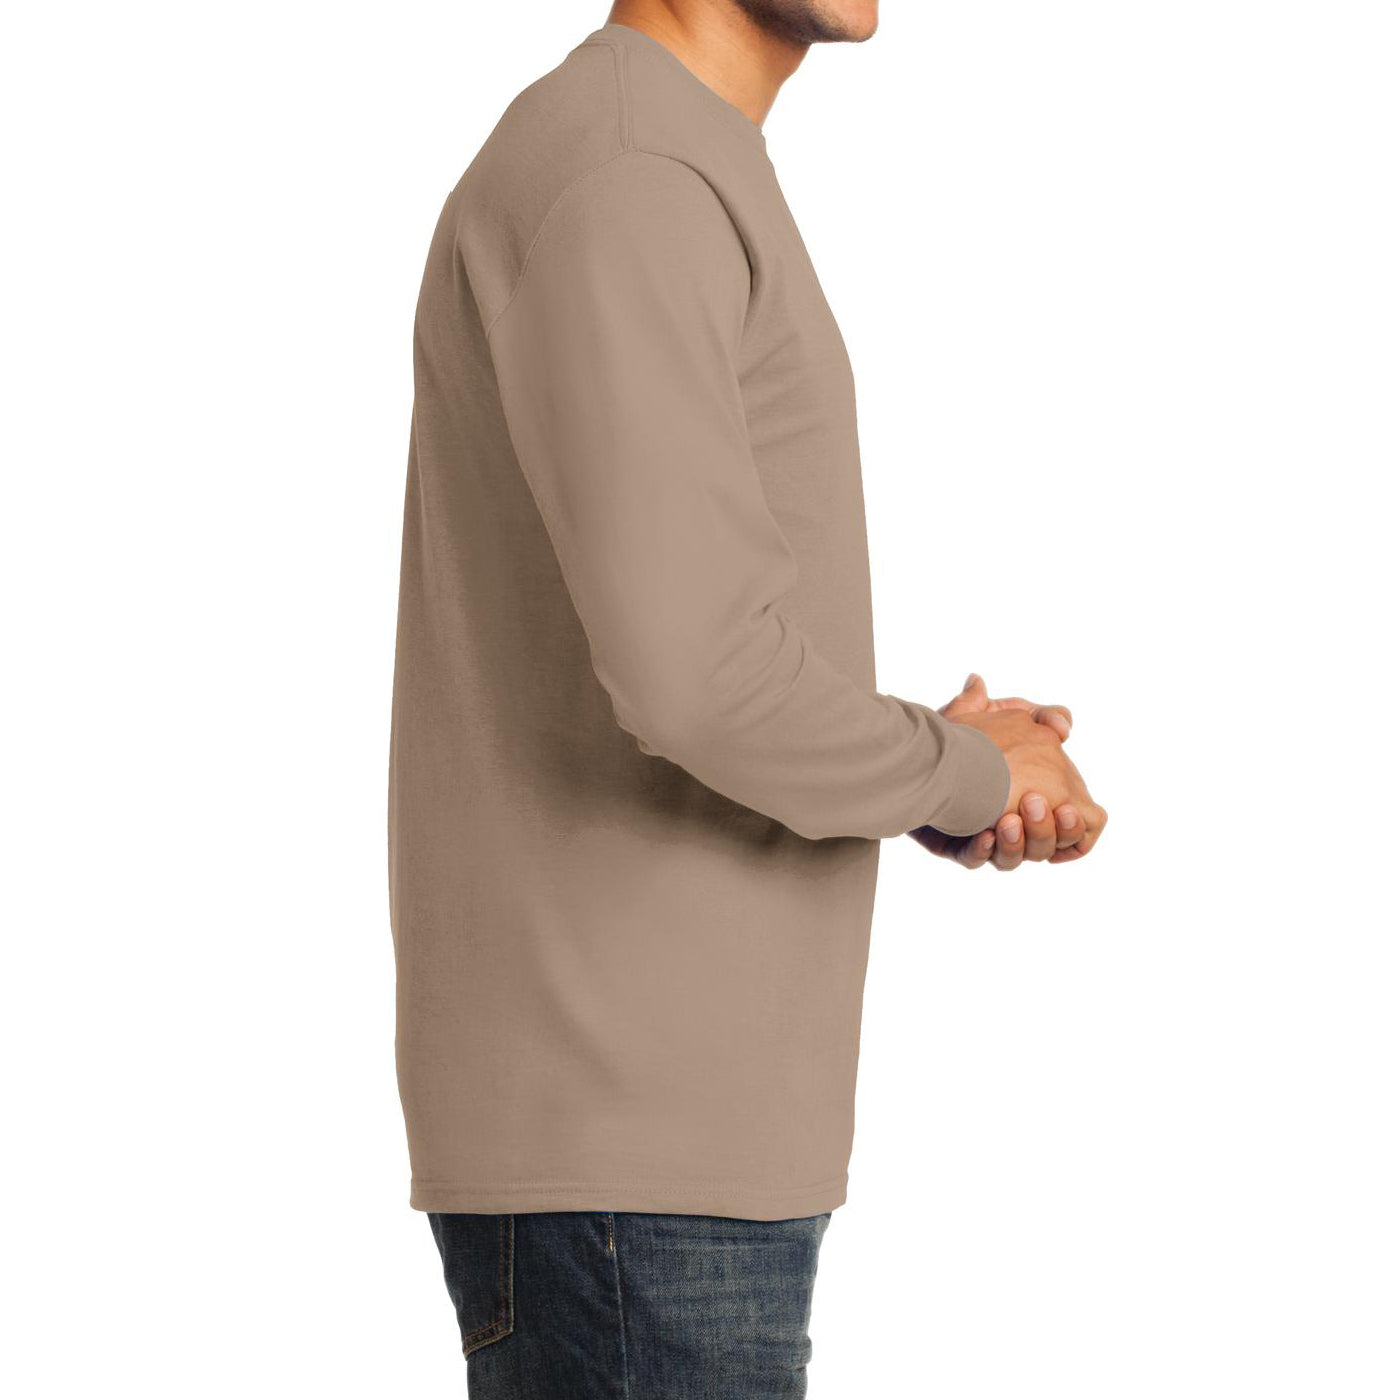 Men's Long Sleeve Essential Tee - Sand - Side